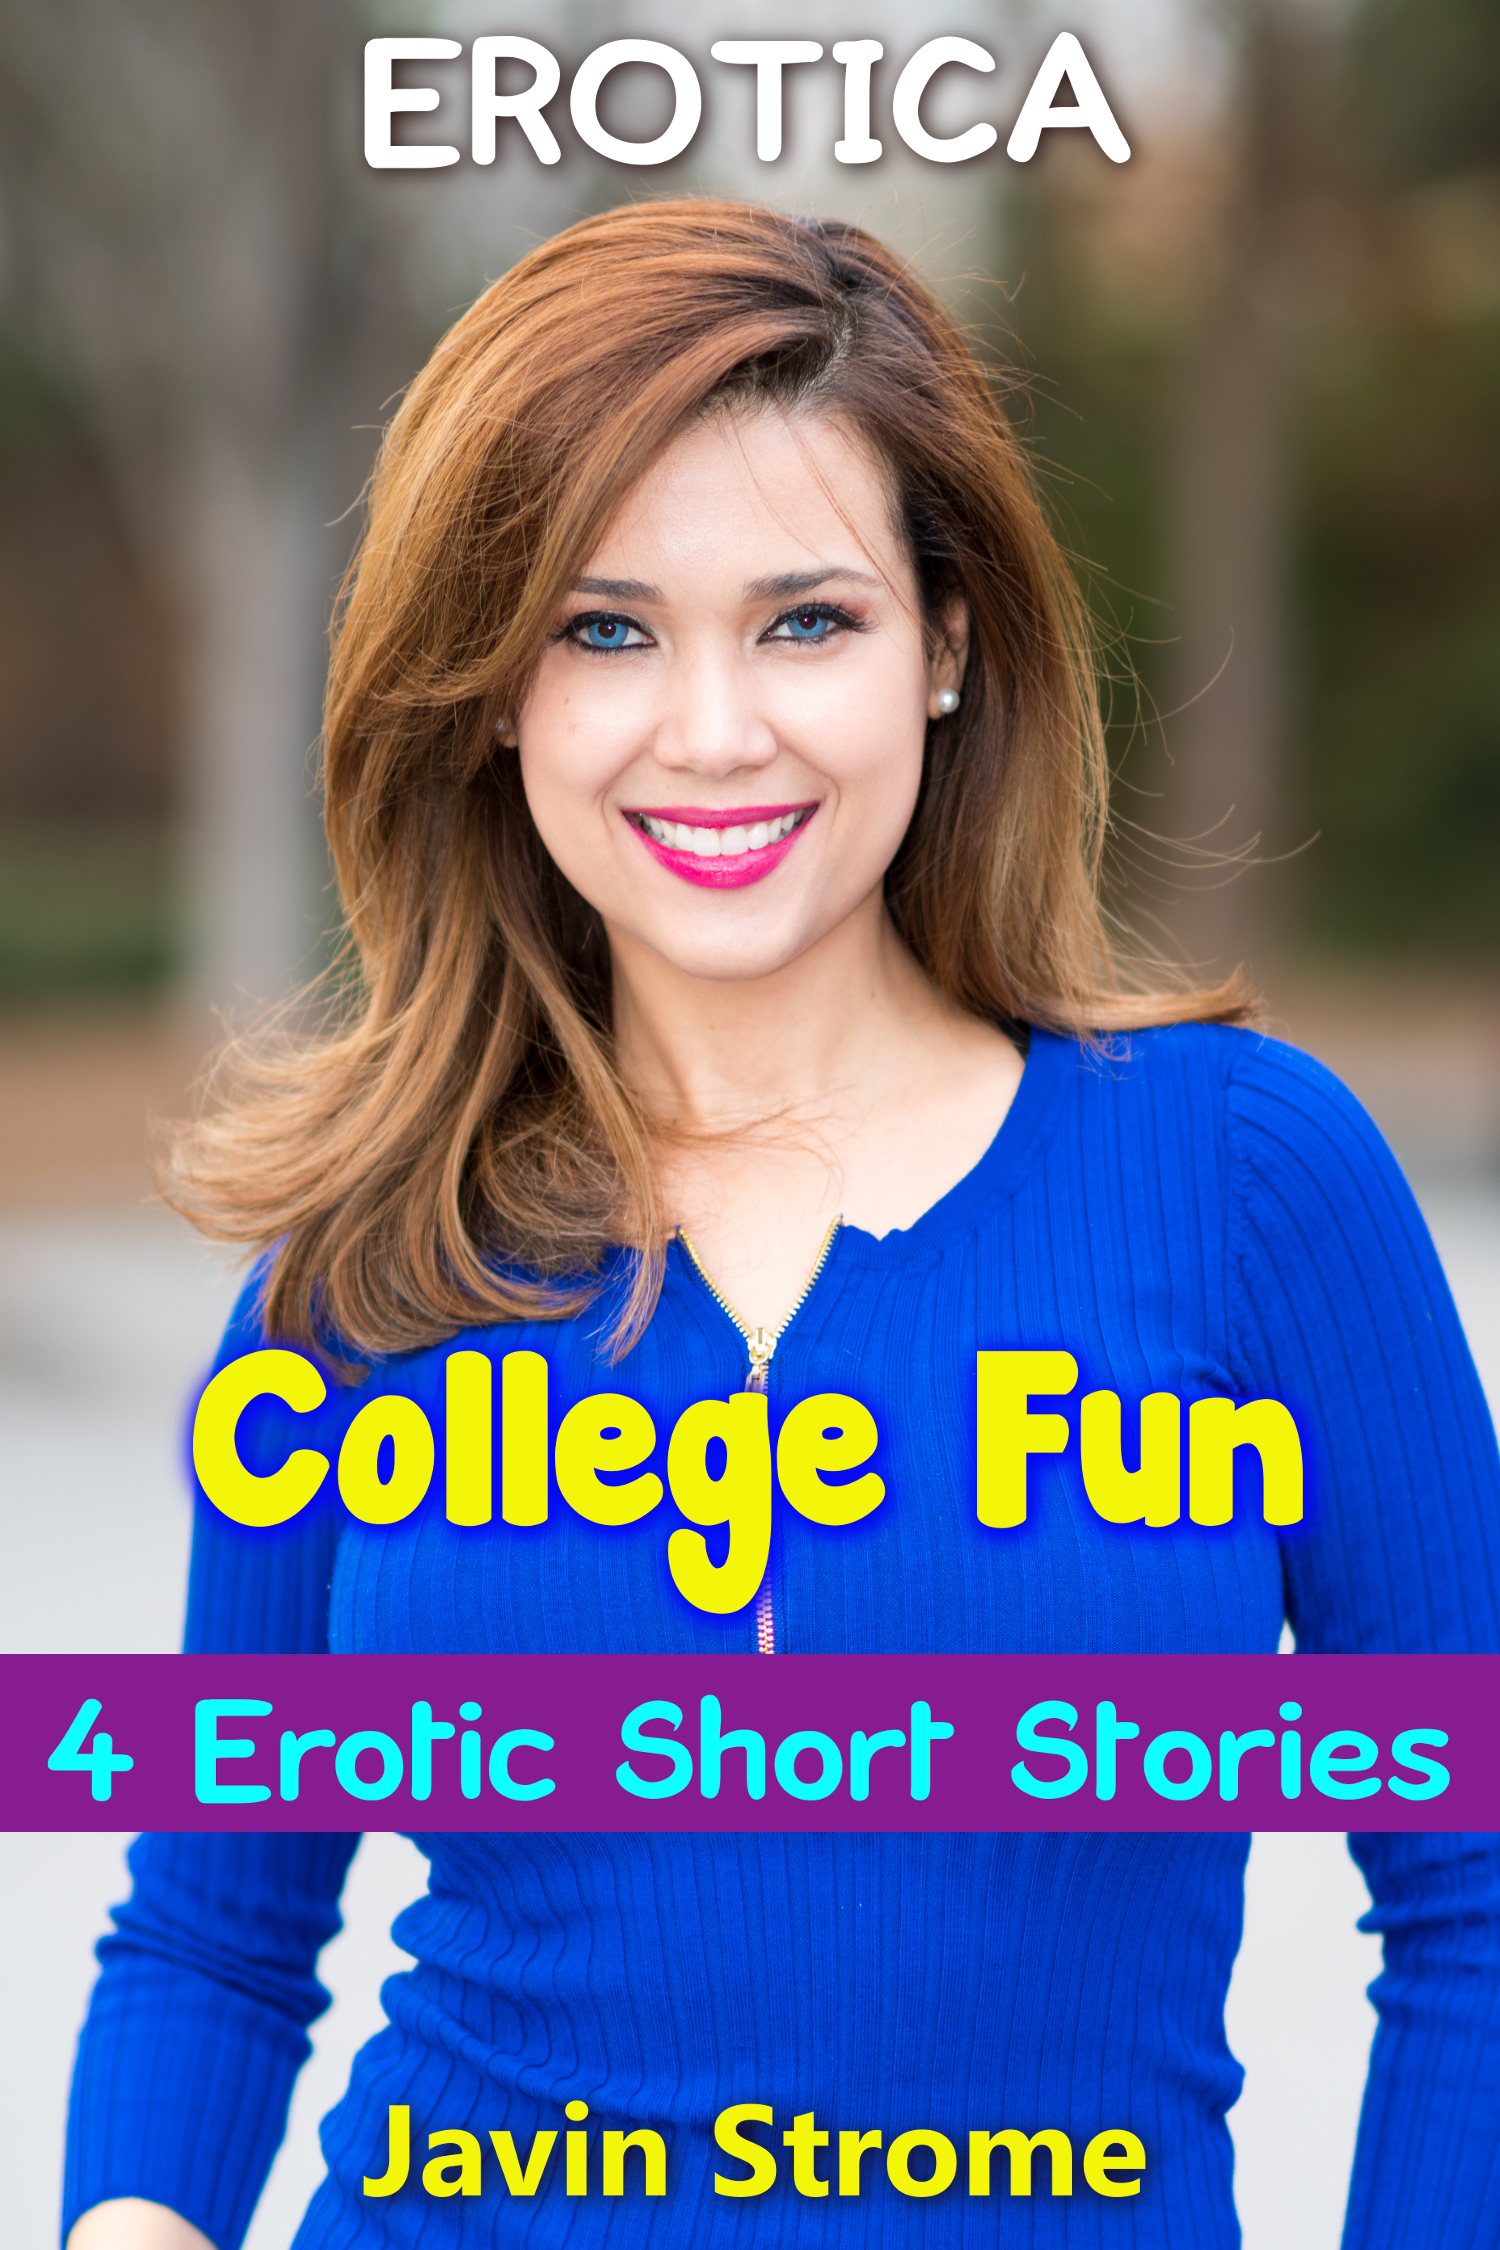 Erotica College Fun 4 Erotic Short Stories